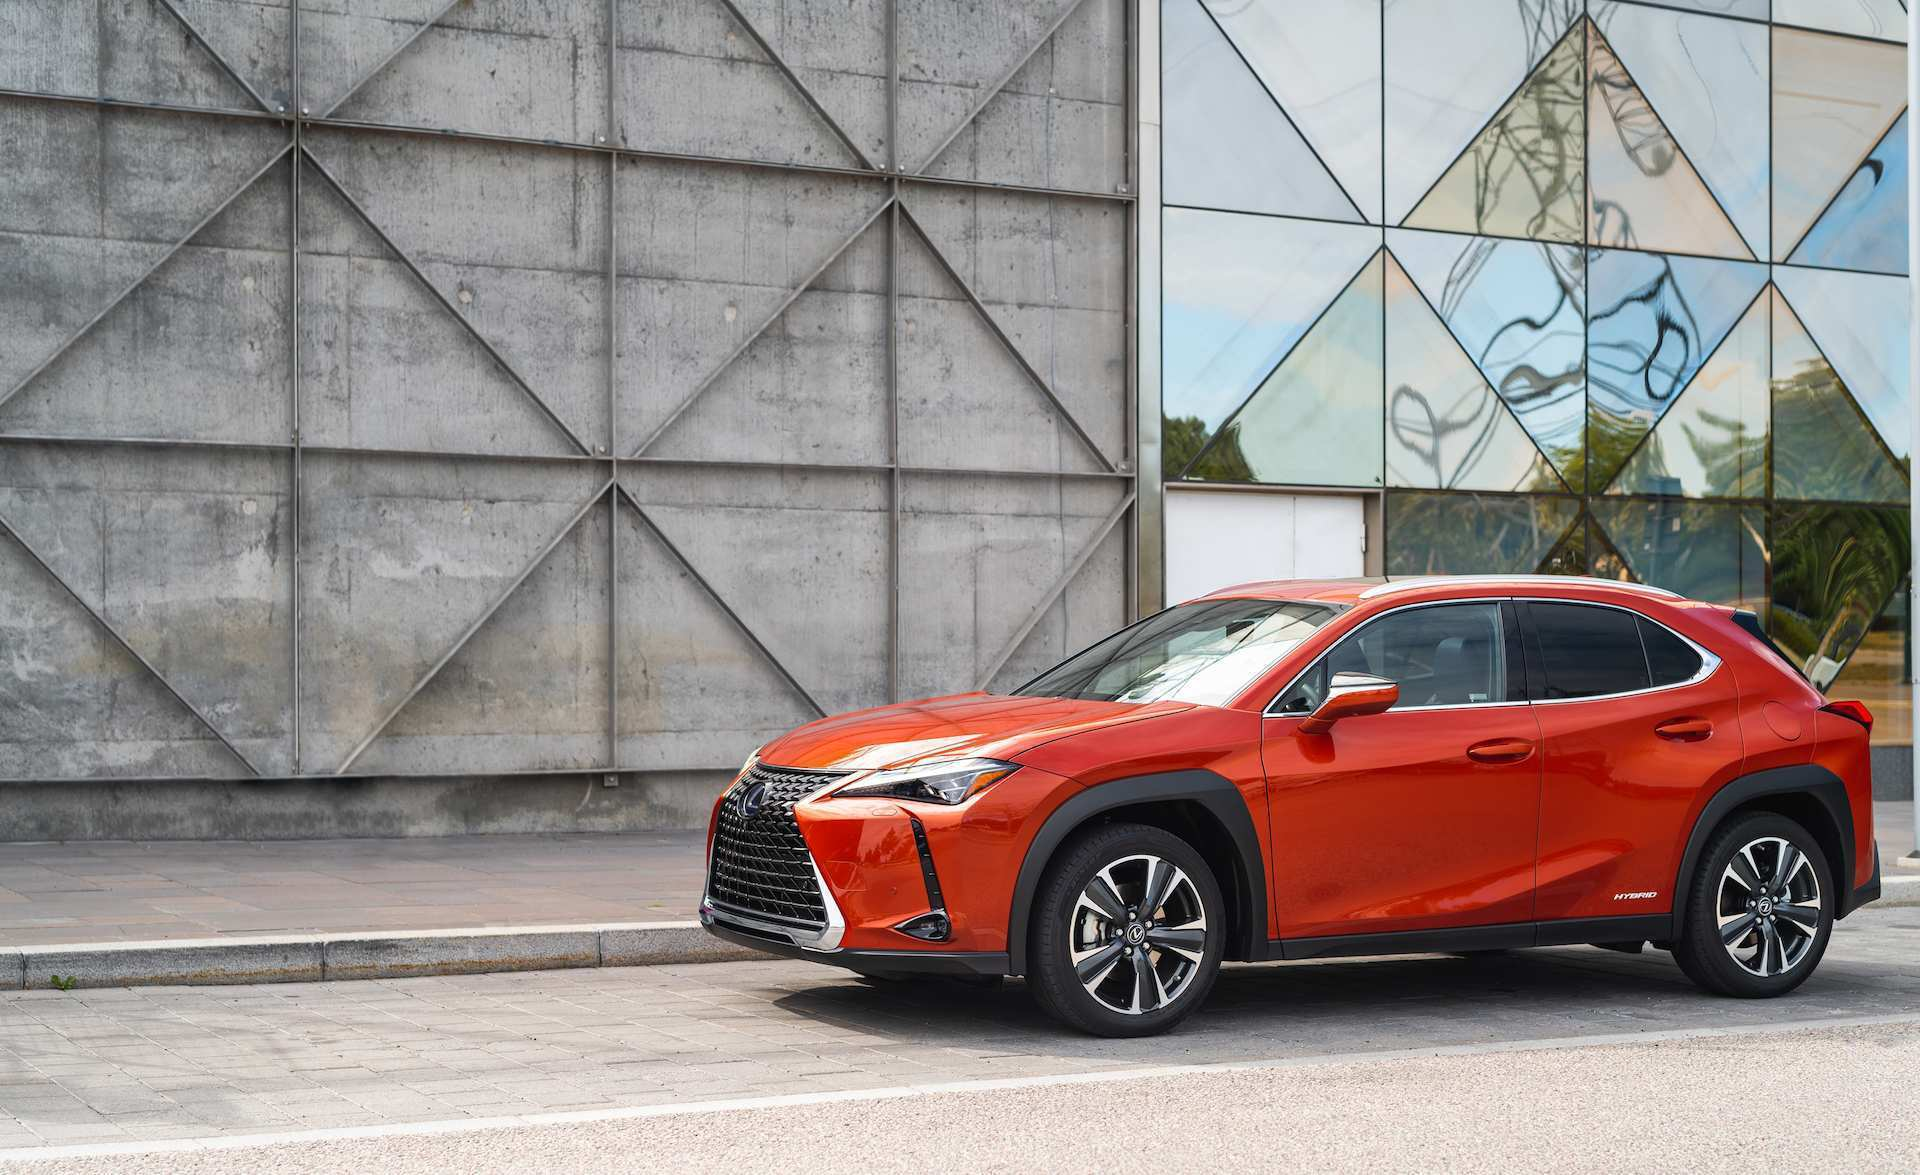 92 A 2019 Lexus Ux Price Canada New Model And Performance